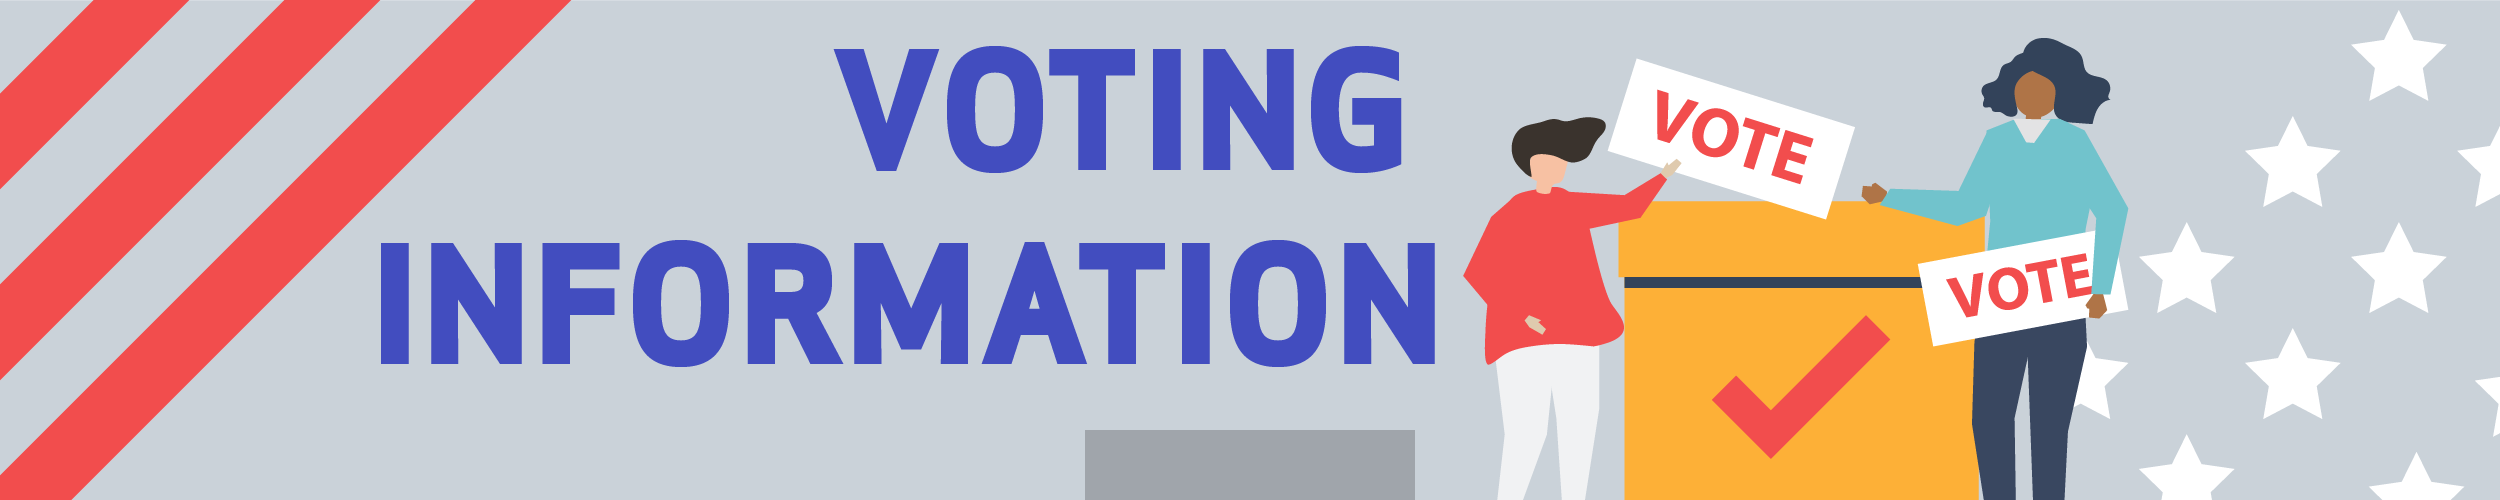 "Voting Information Slide with people holding ""vote"" signs in front of a voting booth"